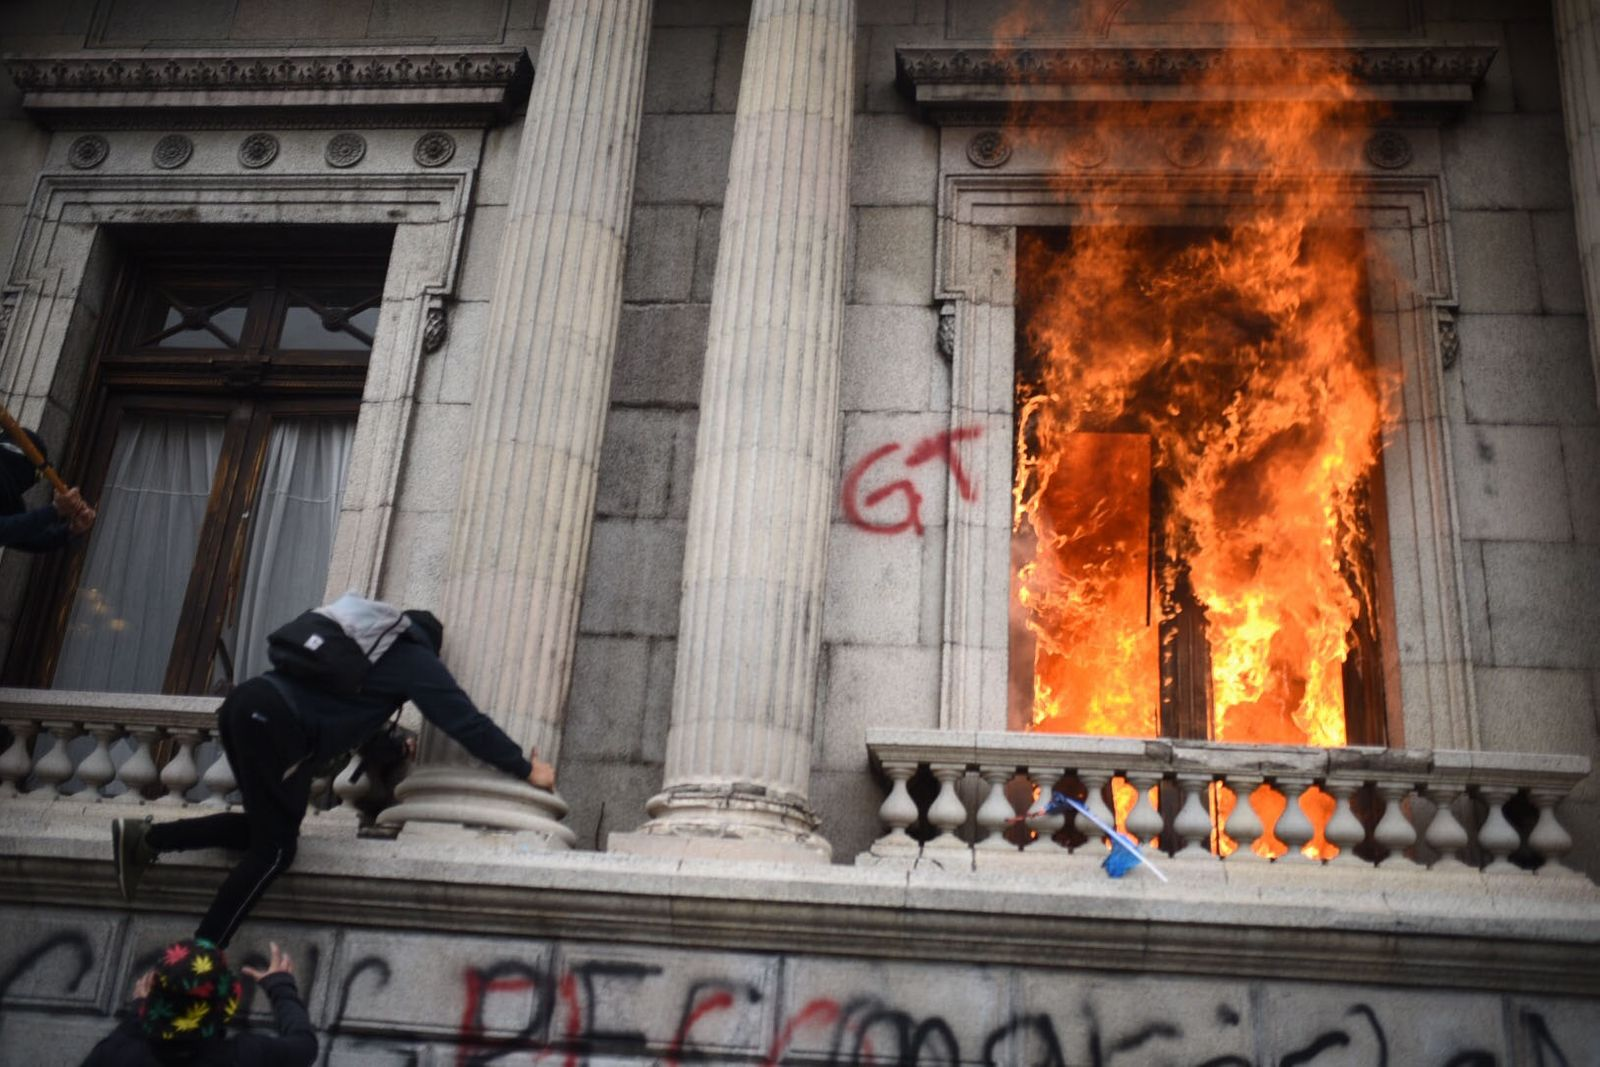 Guatemalan Congress set on fire during anti-government protest, Guatemala City - 21 Nov 2020